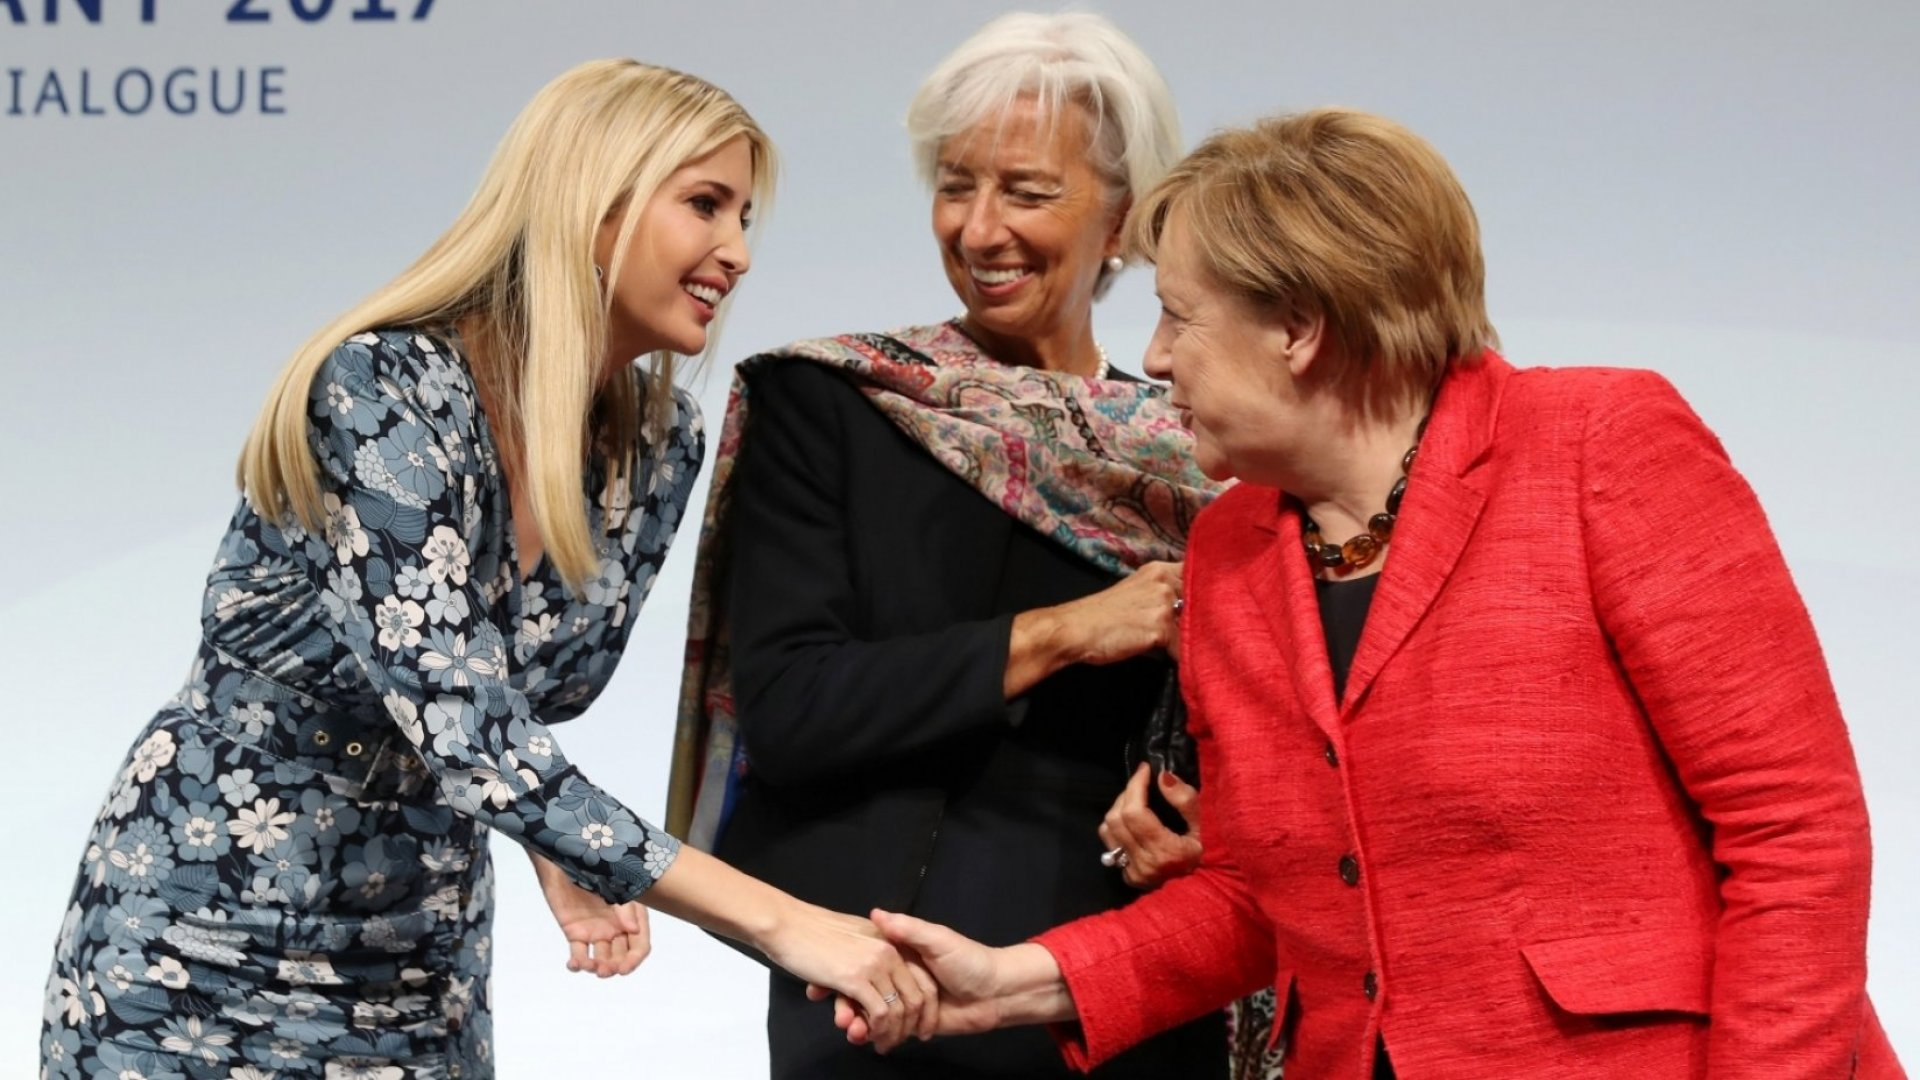 Ivanka Trump, daughter of U.S. President Donald Trump, International Monetary Fund (IMF) Managing Director Christine Lagarde and German Chancellor Angela Merkel talk on stage at the W20 conference on April 25, 2017 in Berlin, Germany.